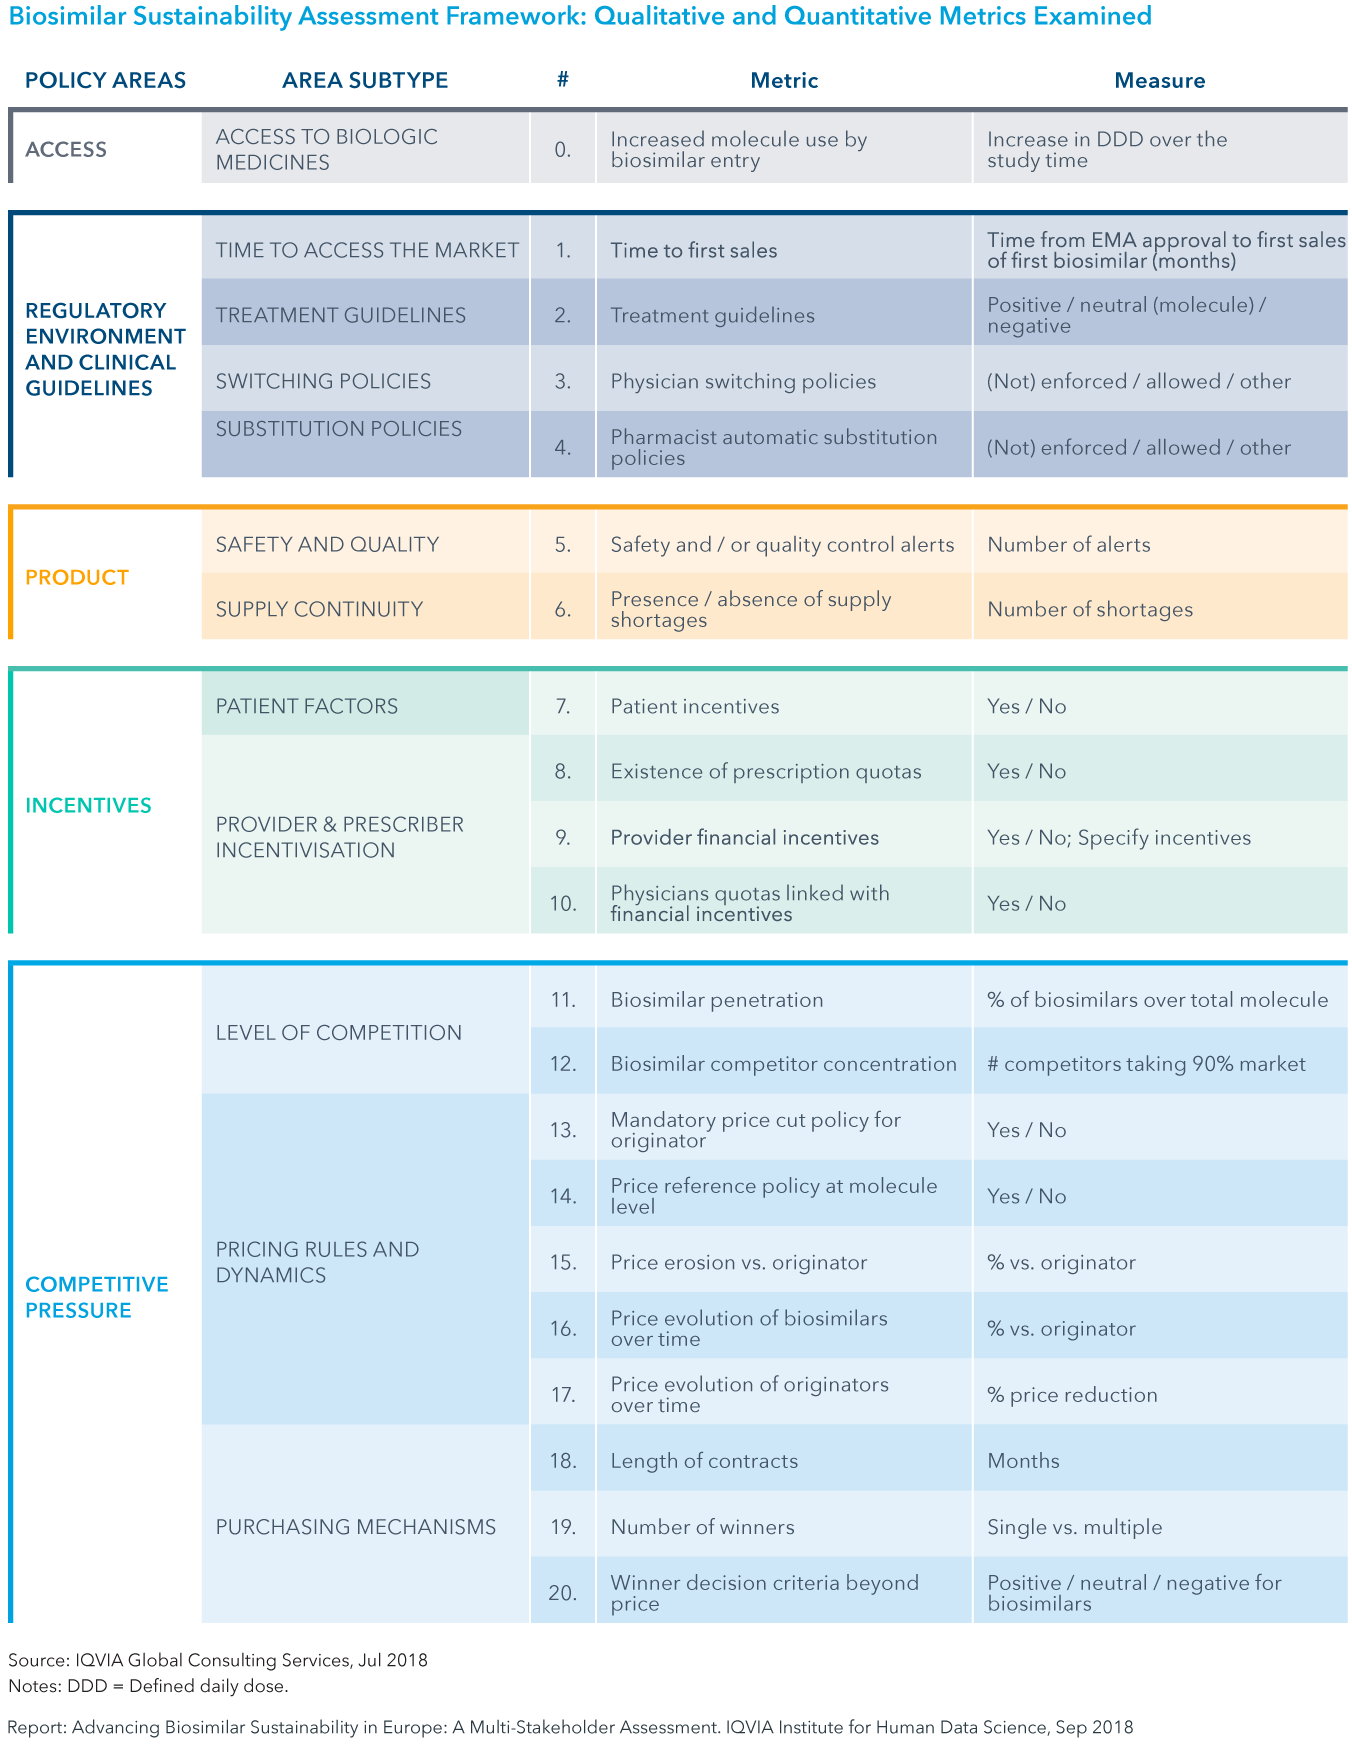 Chart 6: Biosimilar Sustainability Assessment Framework: Qualitative and Quantitative Metrics Examined